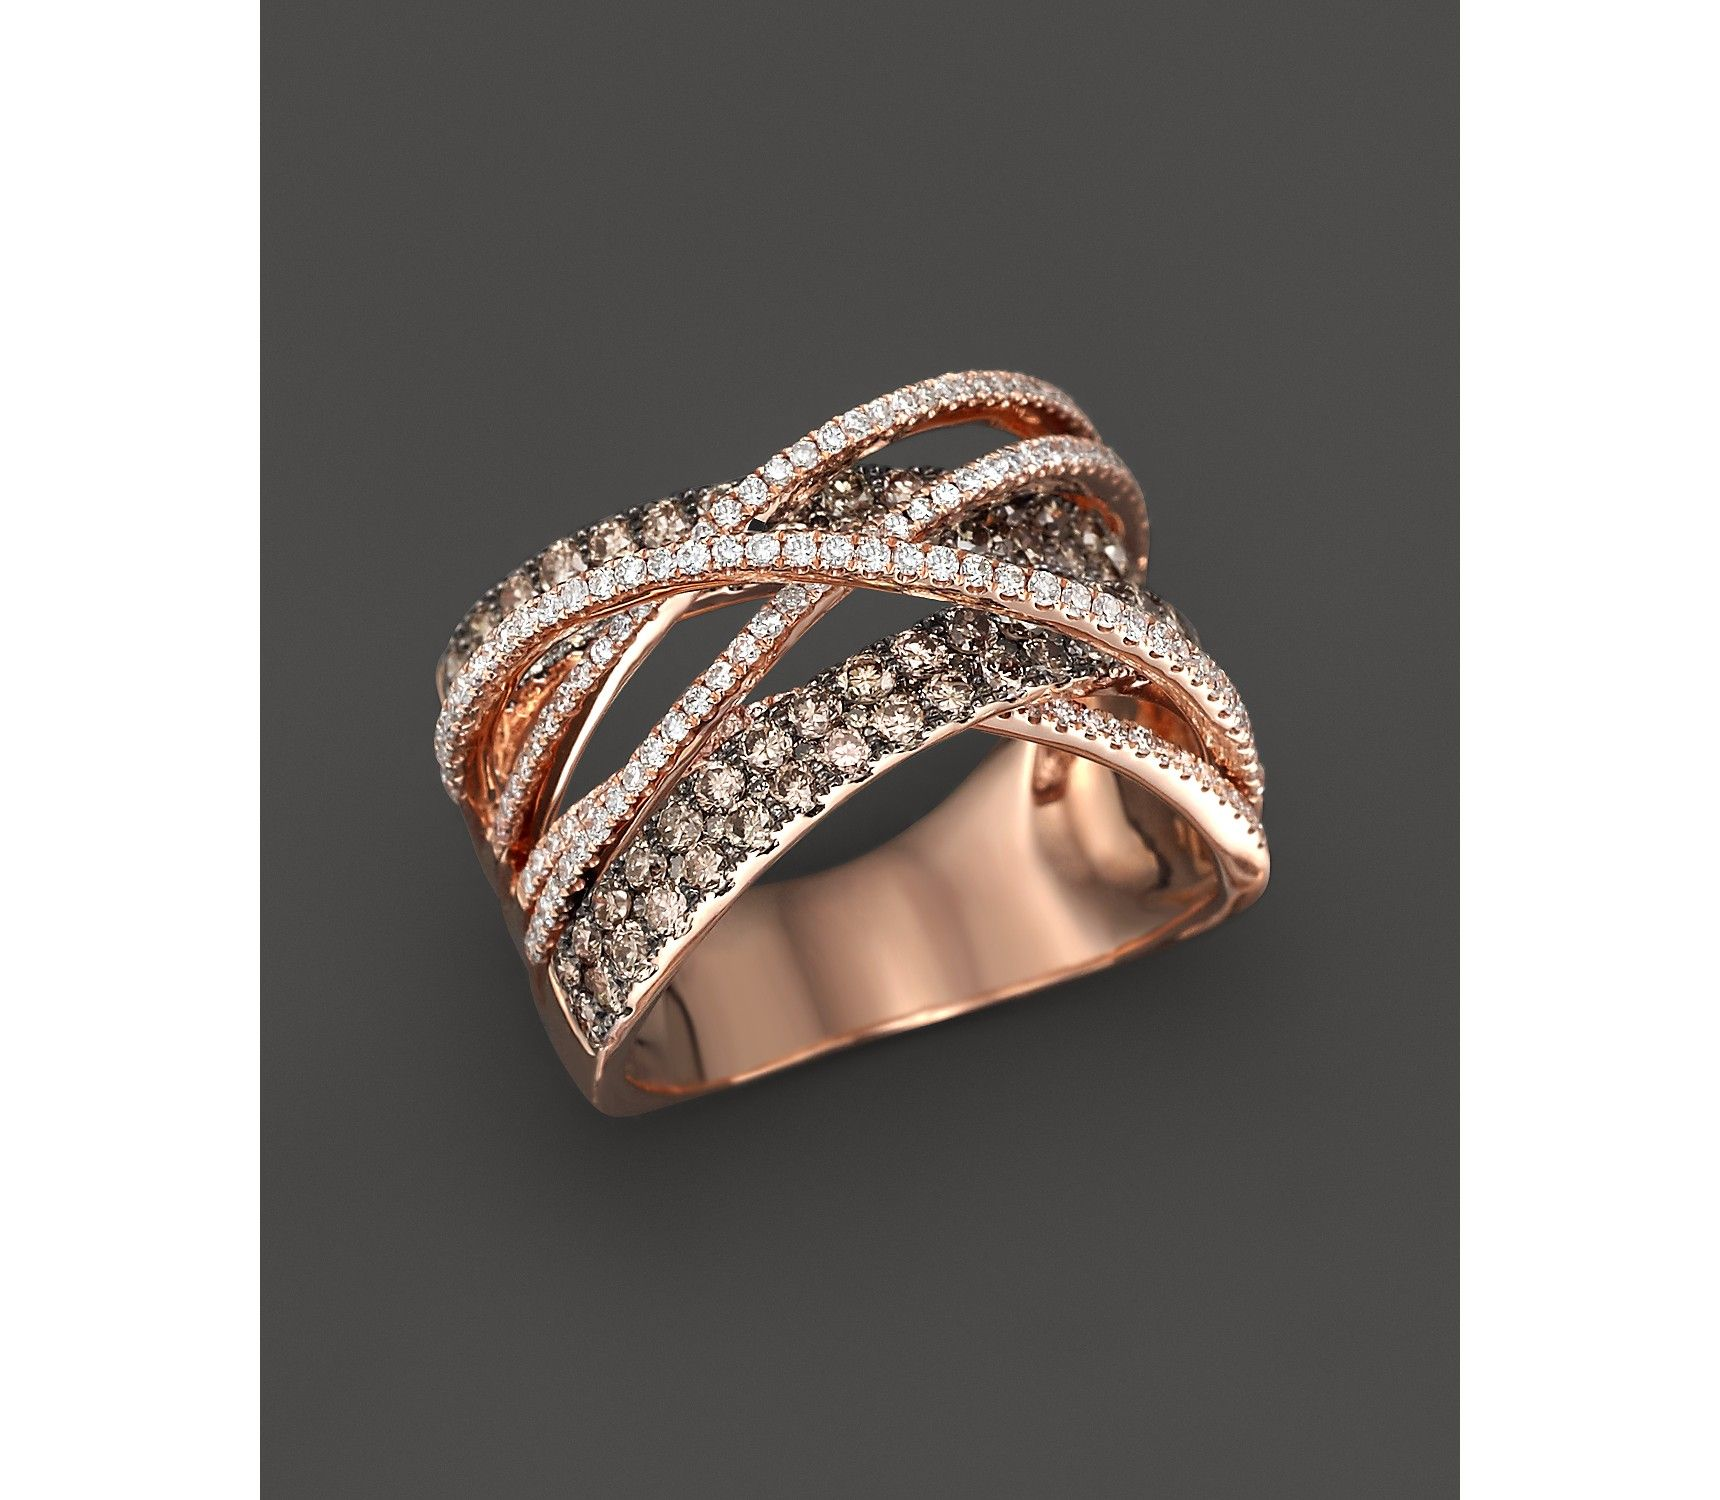 Brown and White Diamond Crossover Ring in 14K Rose Gold